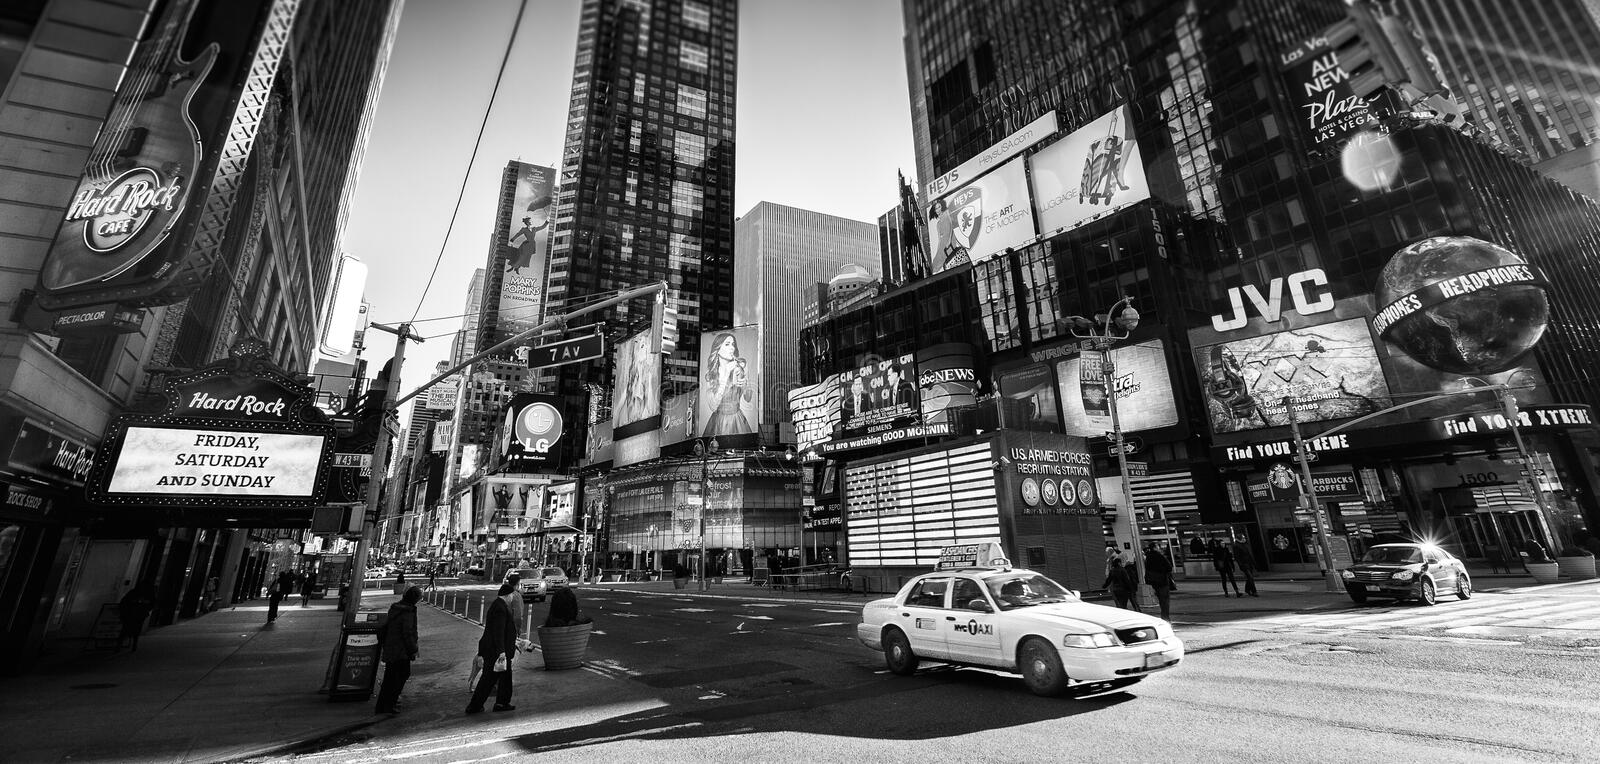 Times Square New York NYC in the morning. A slightly less busy Times Square, New York, NYC in the morning during the usual commute in Black and White stock images